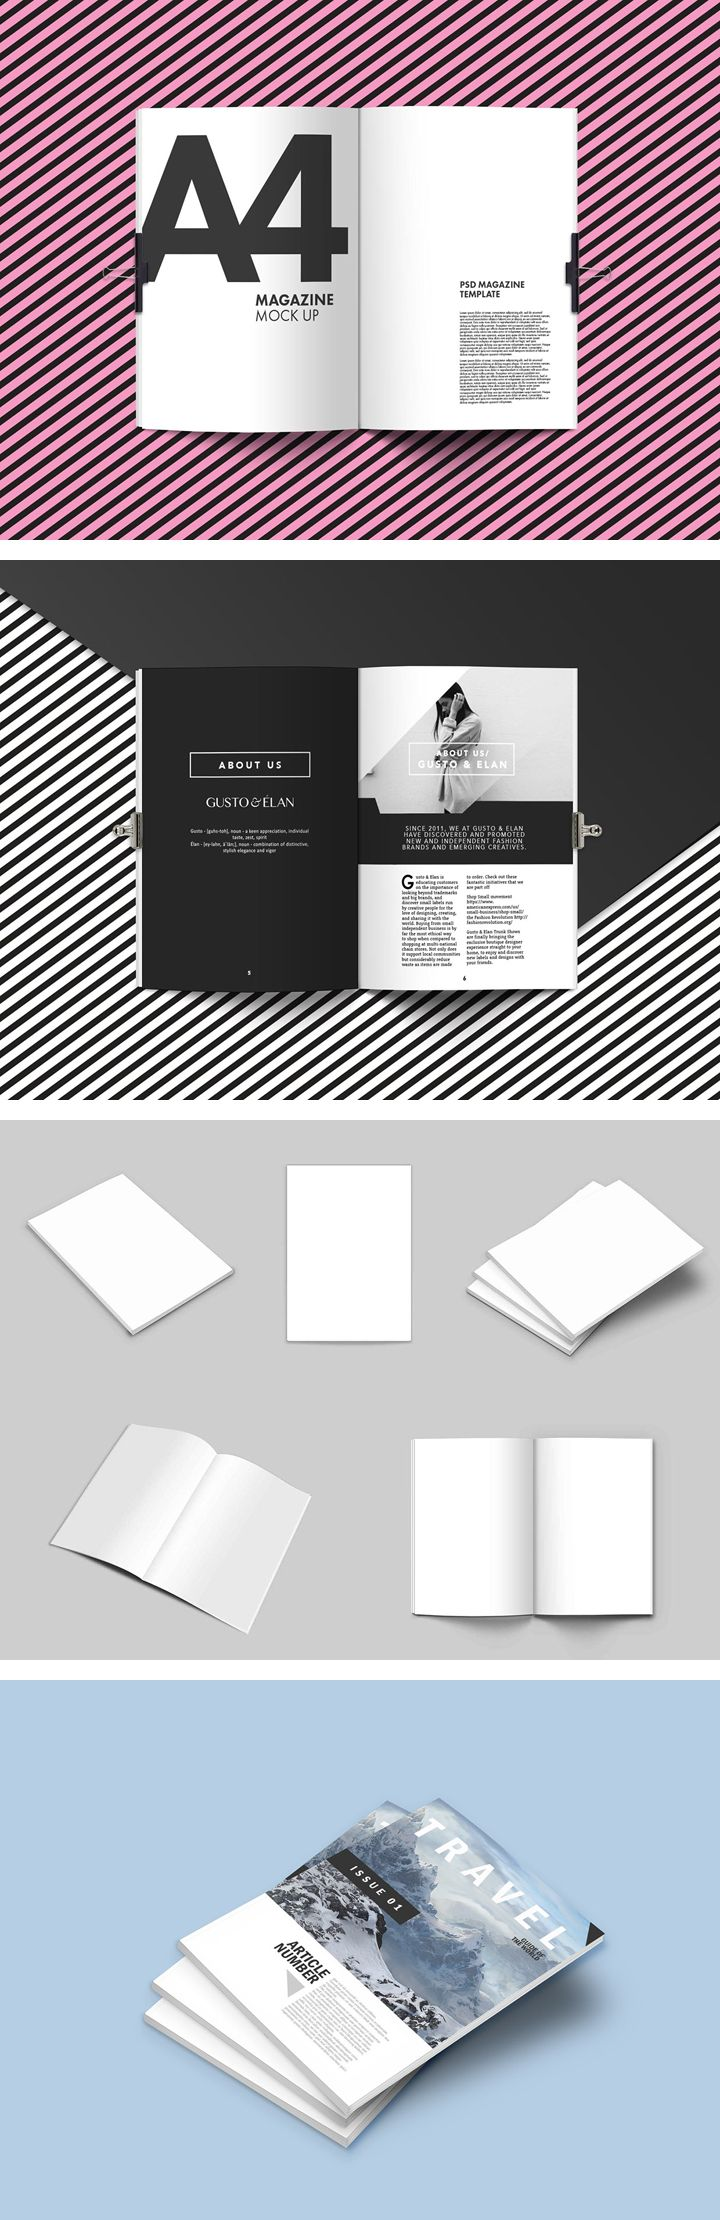 30+ Free Product Mockups of Apple Devices & Branding | Magazine ...